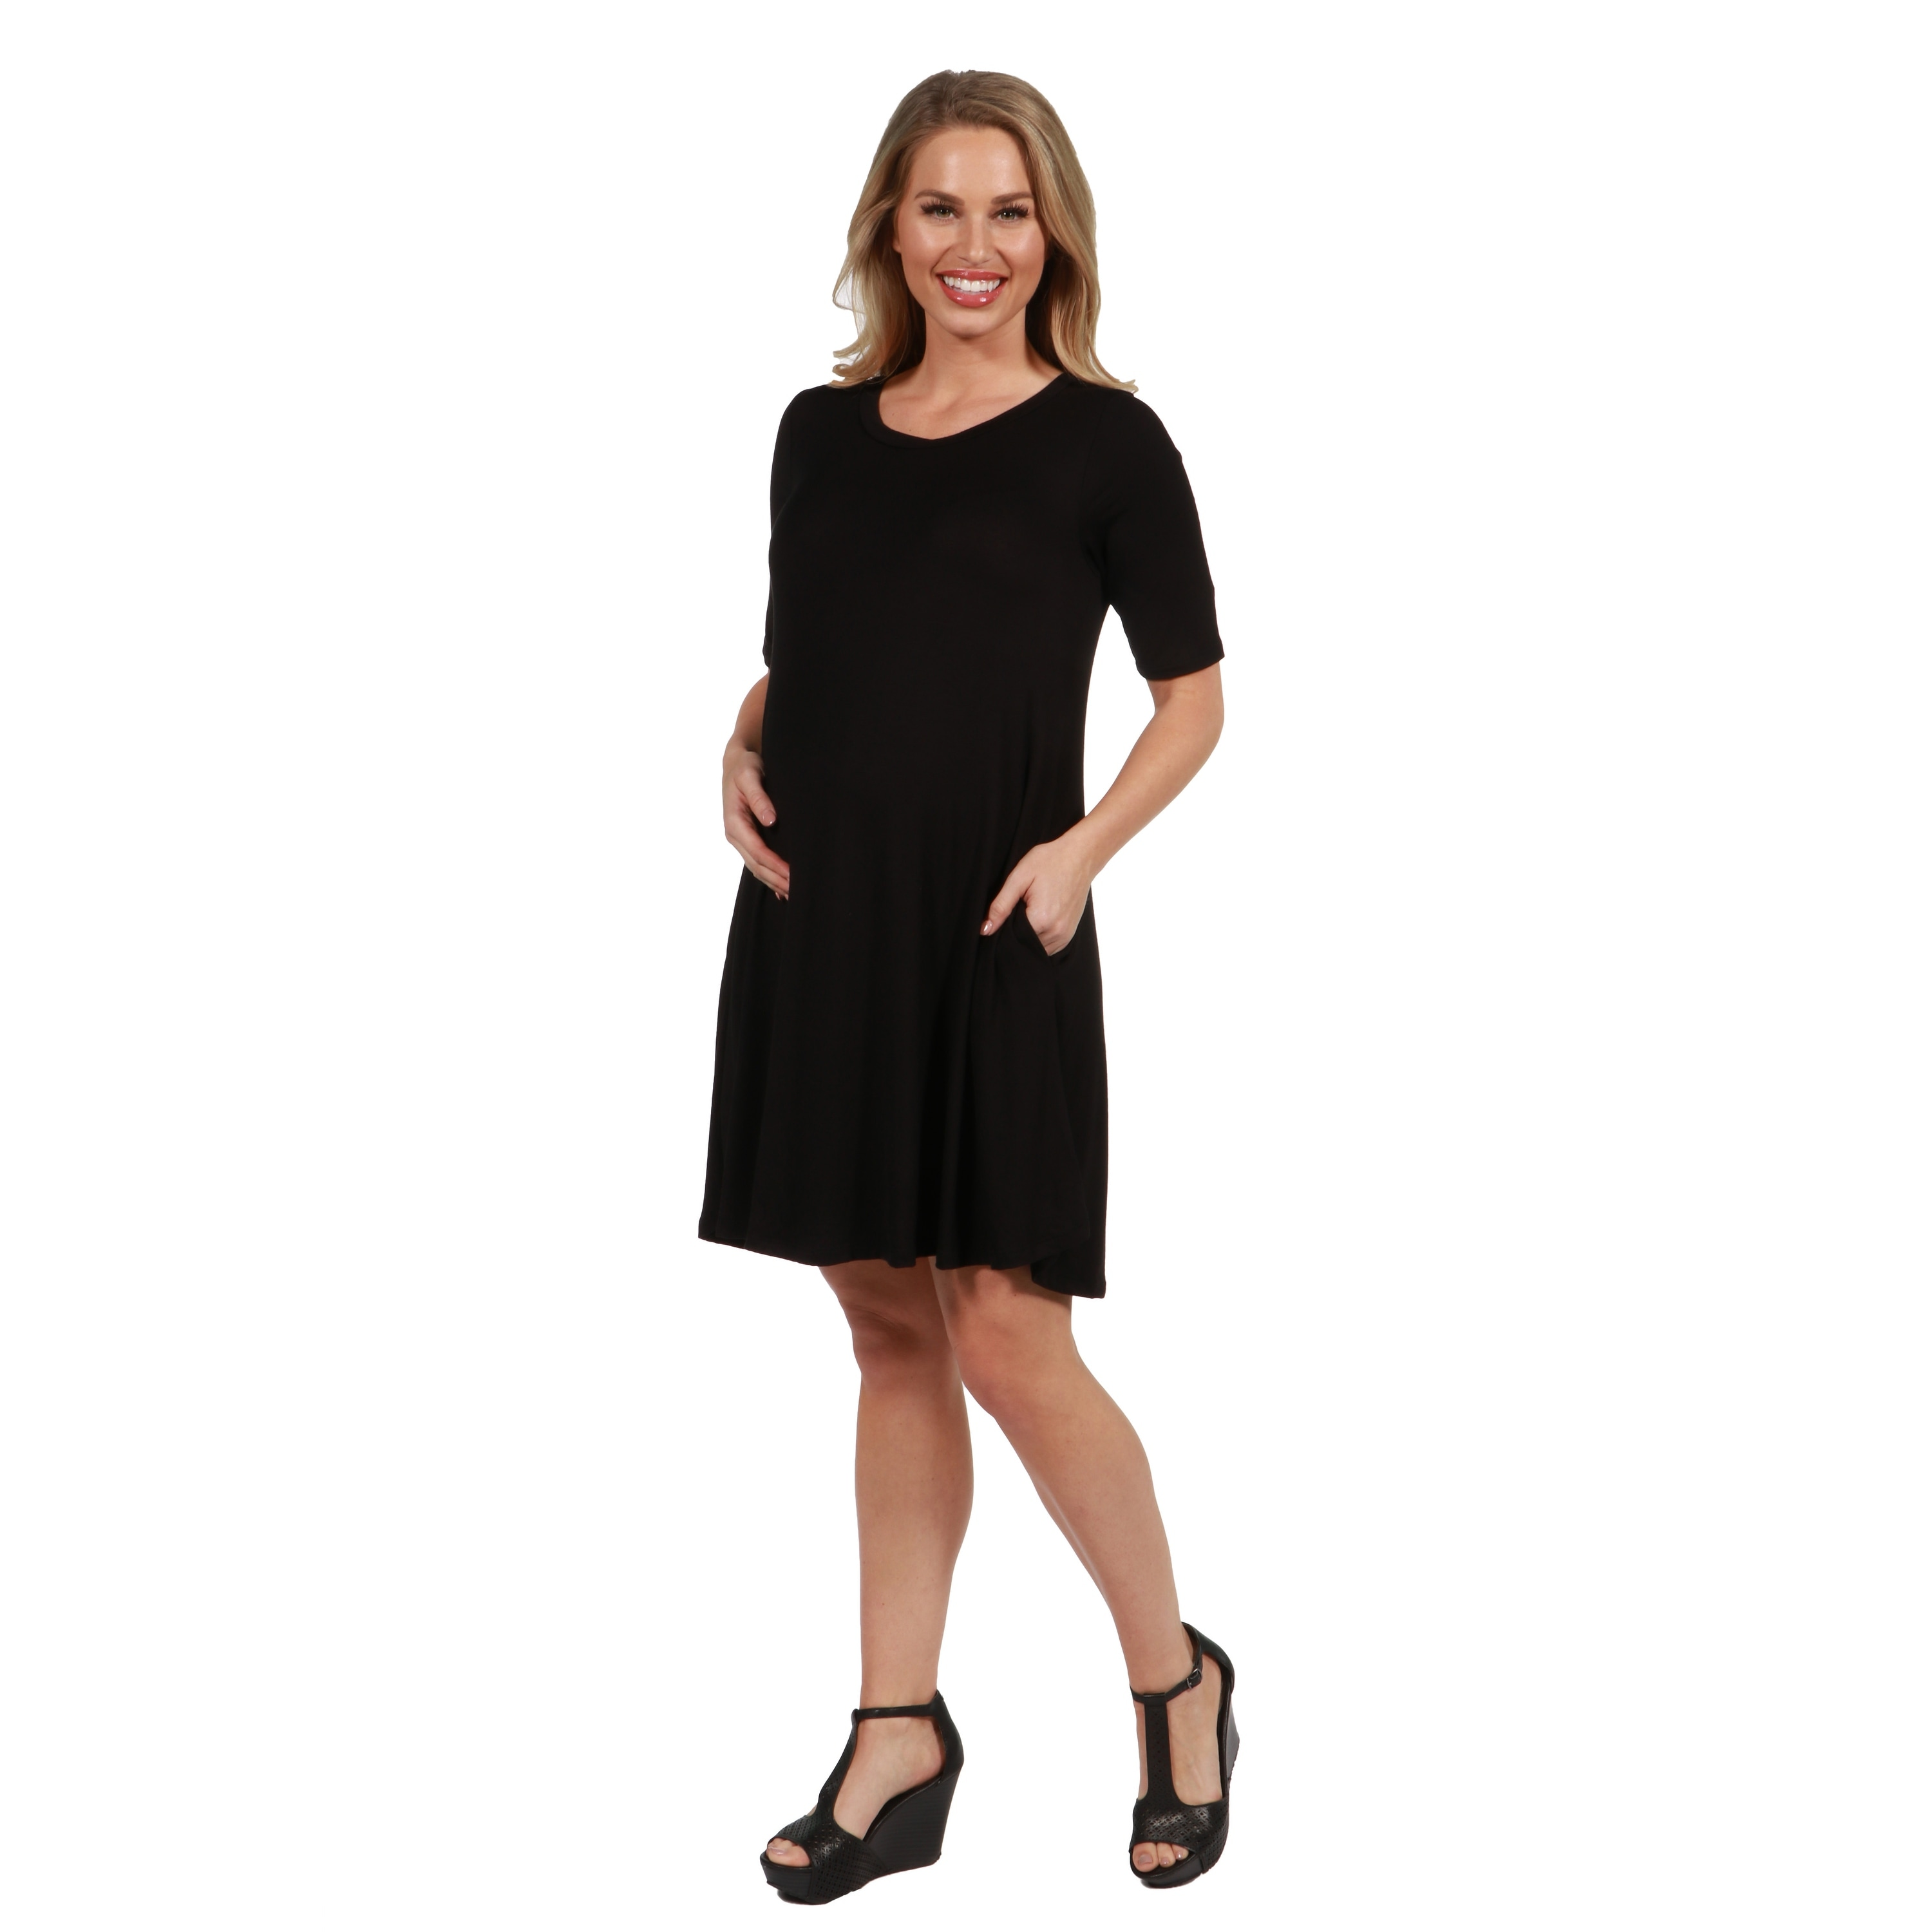 3b3e25a9601 Shop 24Seven Comfort Apparel Pocket Maternity Mini Dress - On Sale - Free  Shipping On Orders Over $45 - Overstock - 21177398